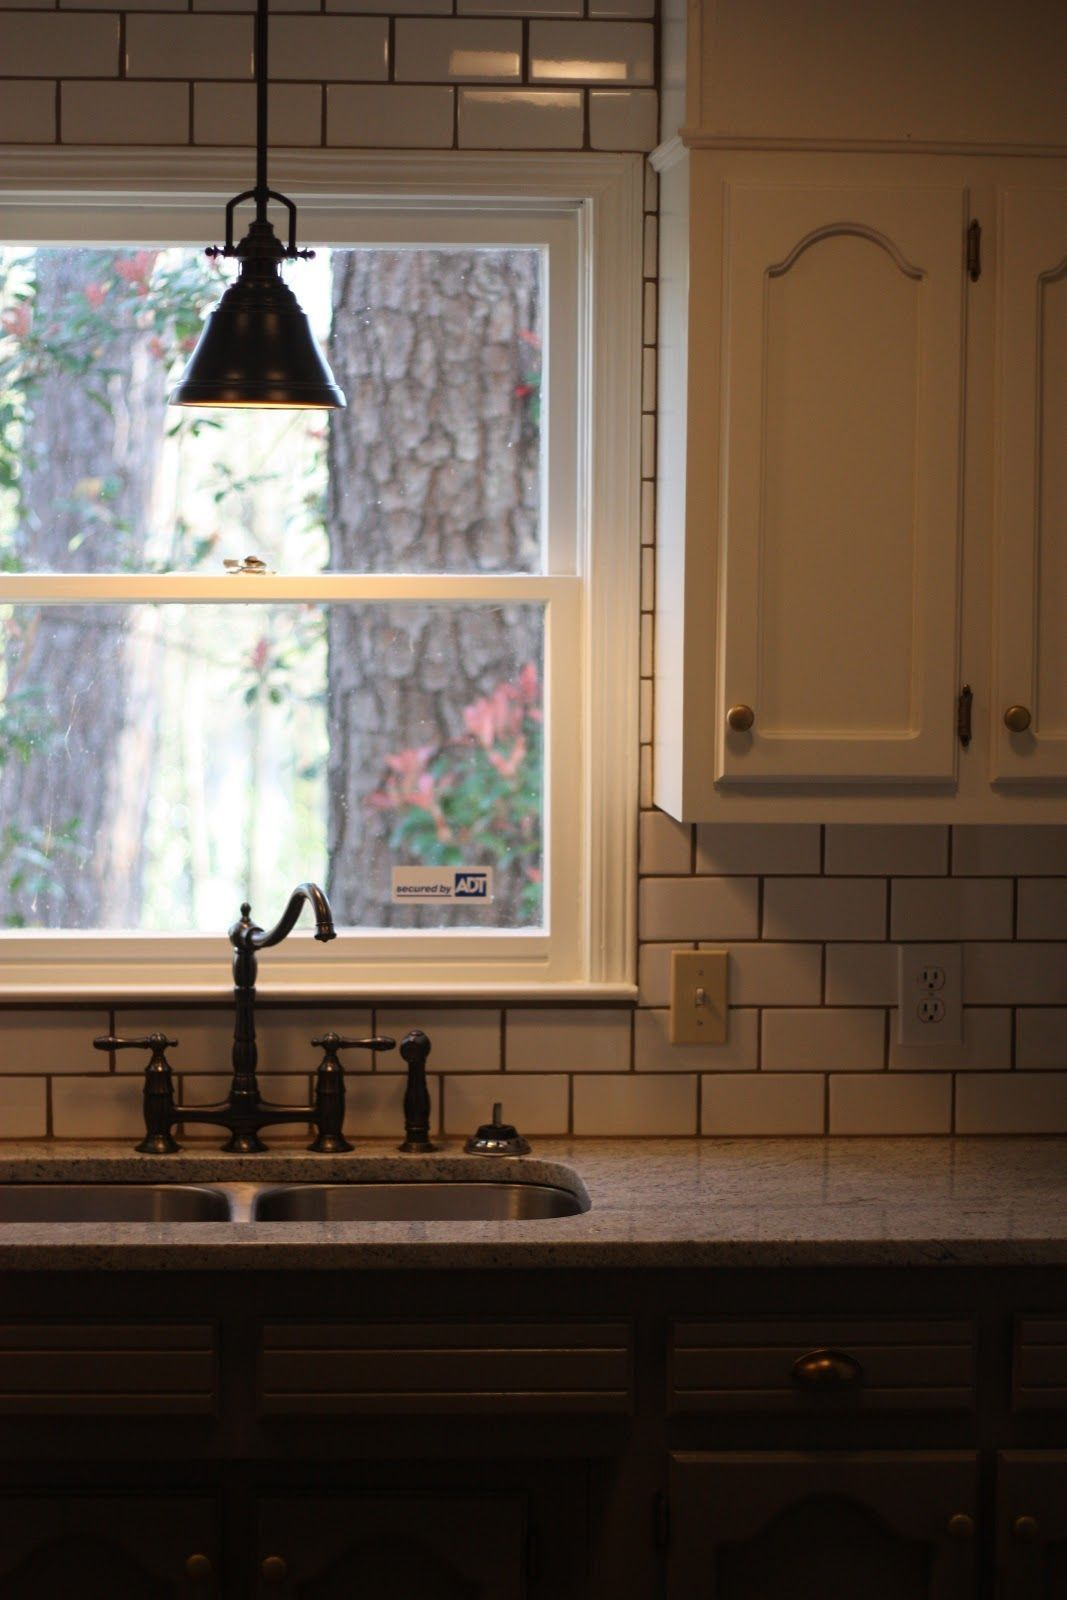 Creative Image Of Lighting Over Kitchen Sink When It Has To Do With The Kitchen Let The Kitchen Sink Lighting Rustic Kitchen Lighting Light Over Kitchen Sink